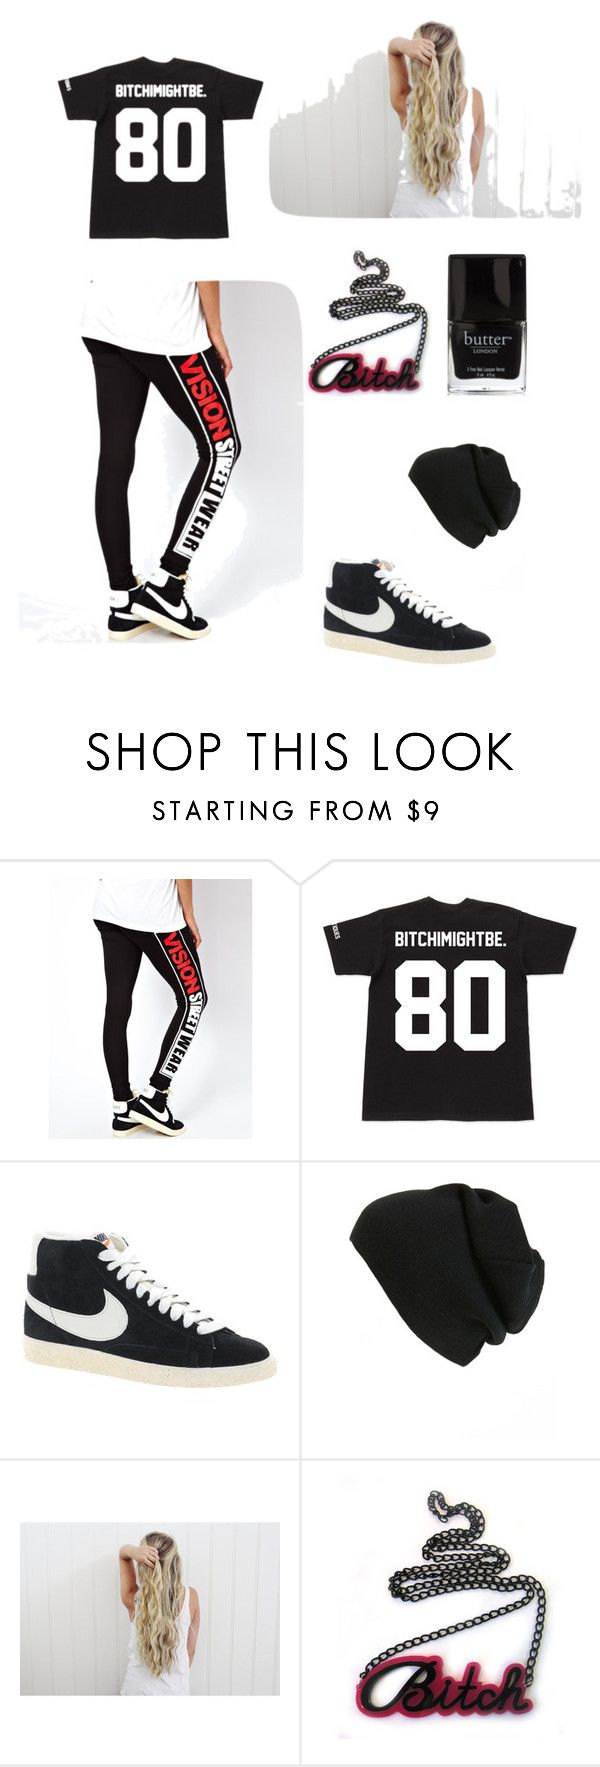 There are 12 vision street wear shoes images in the gallery - Dancing Streetdance With Friends By Lauraswagwillows On Polyvore Featuring Vision Street Wear Nike And Bp